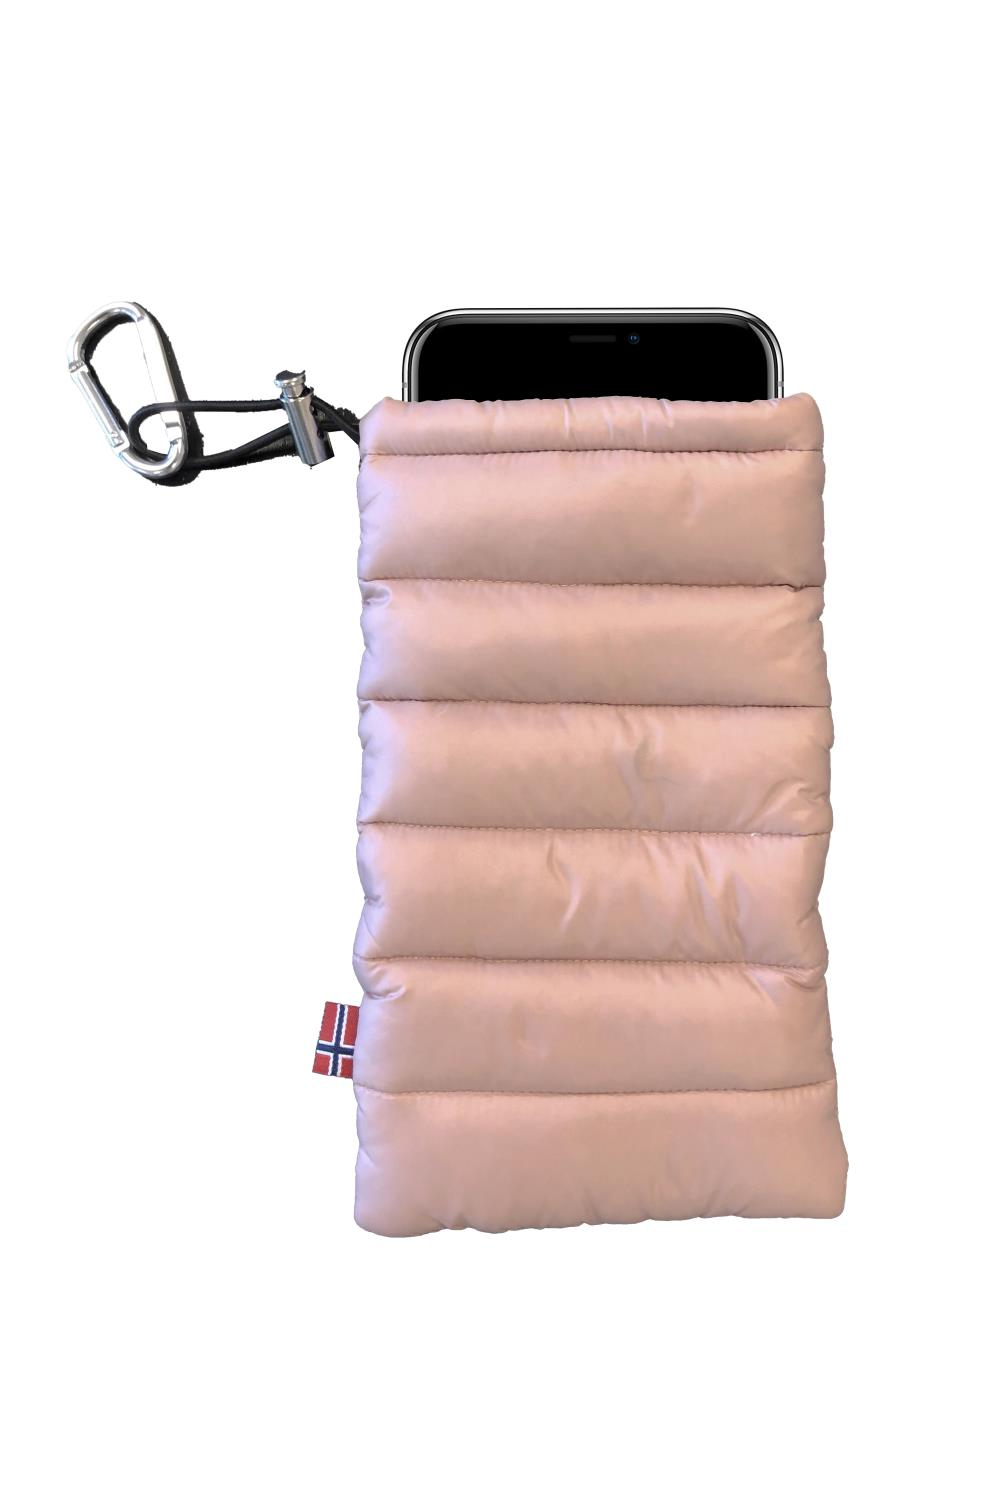 Thermopoc  dunpose mobil Soft Pink 100x189mm.